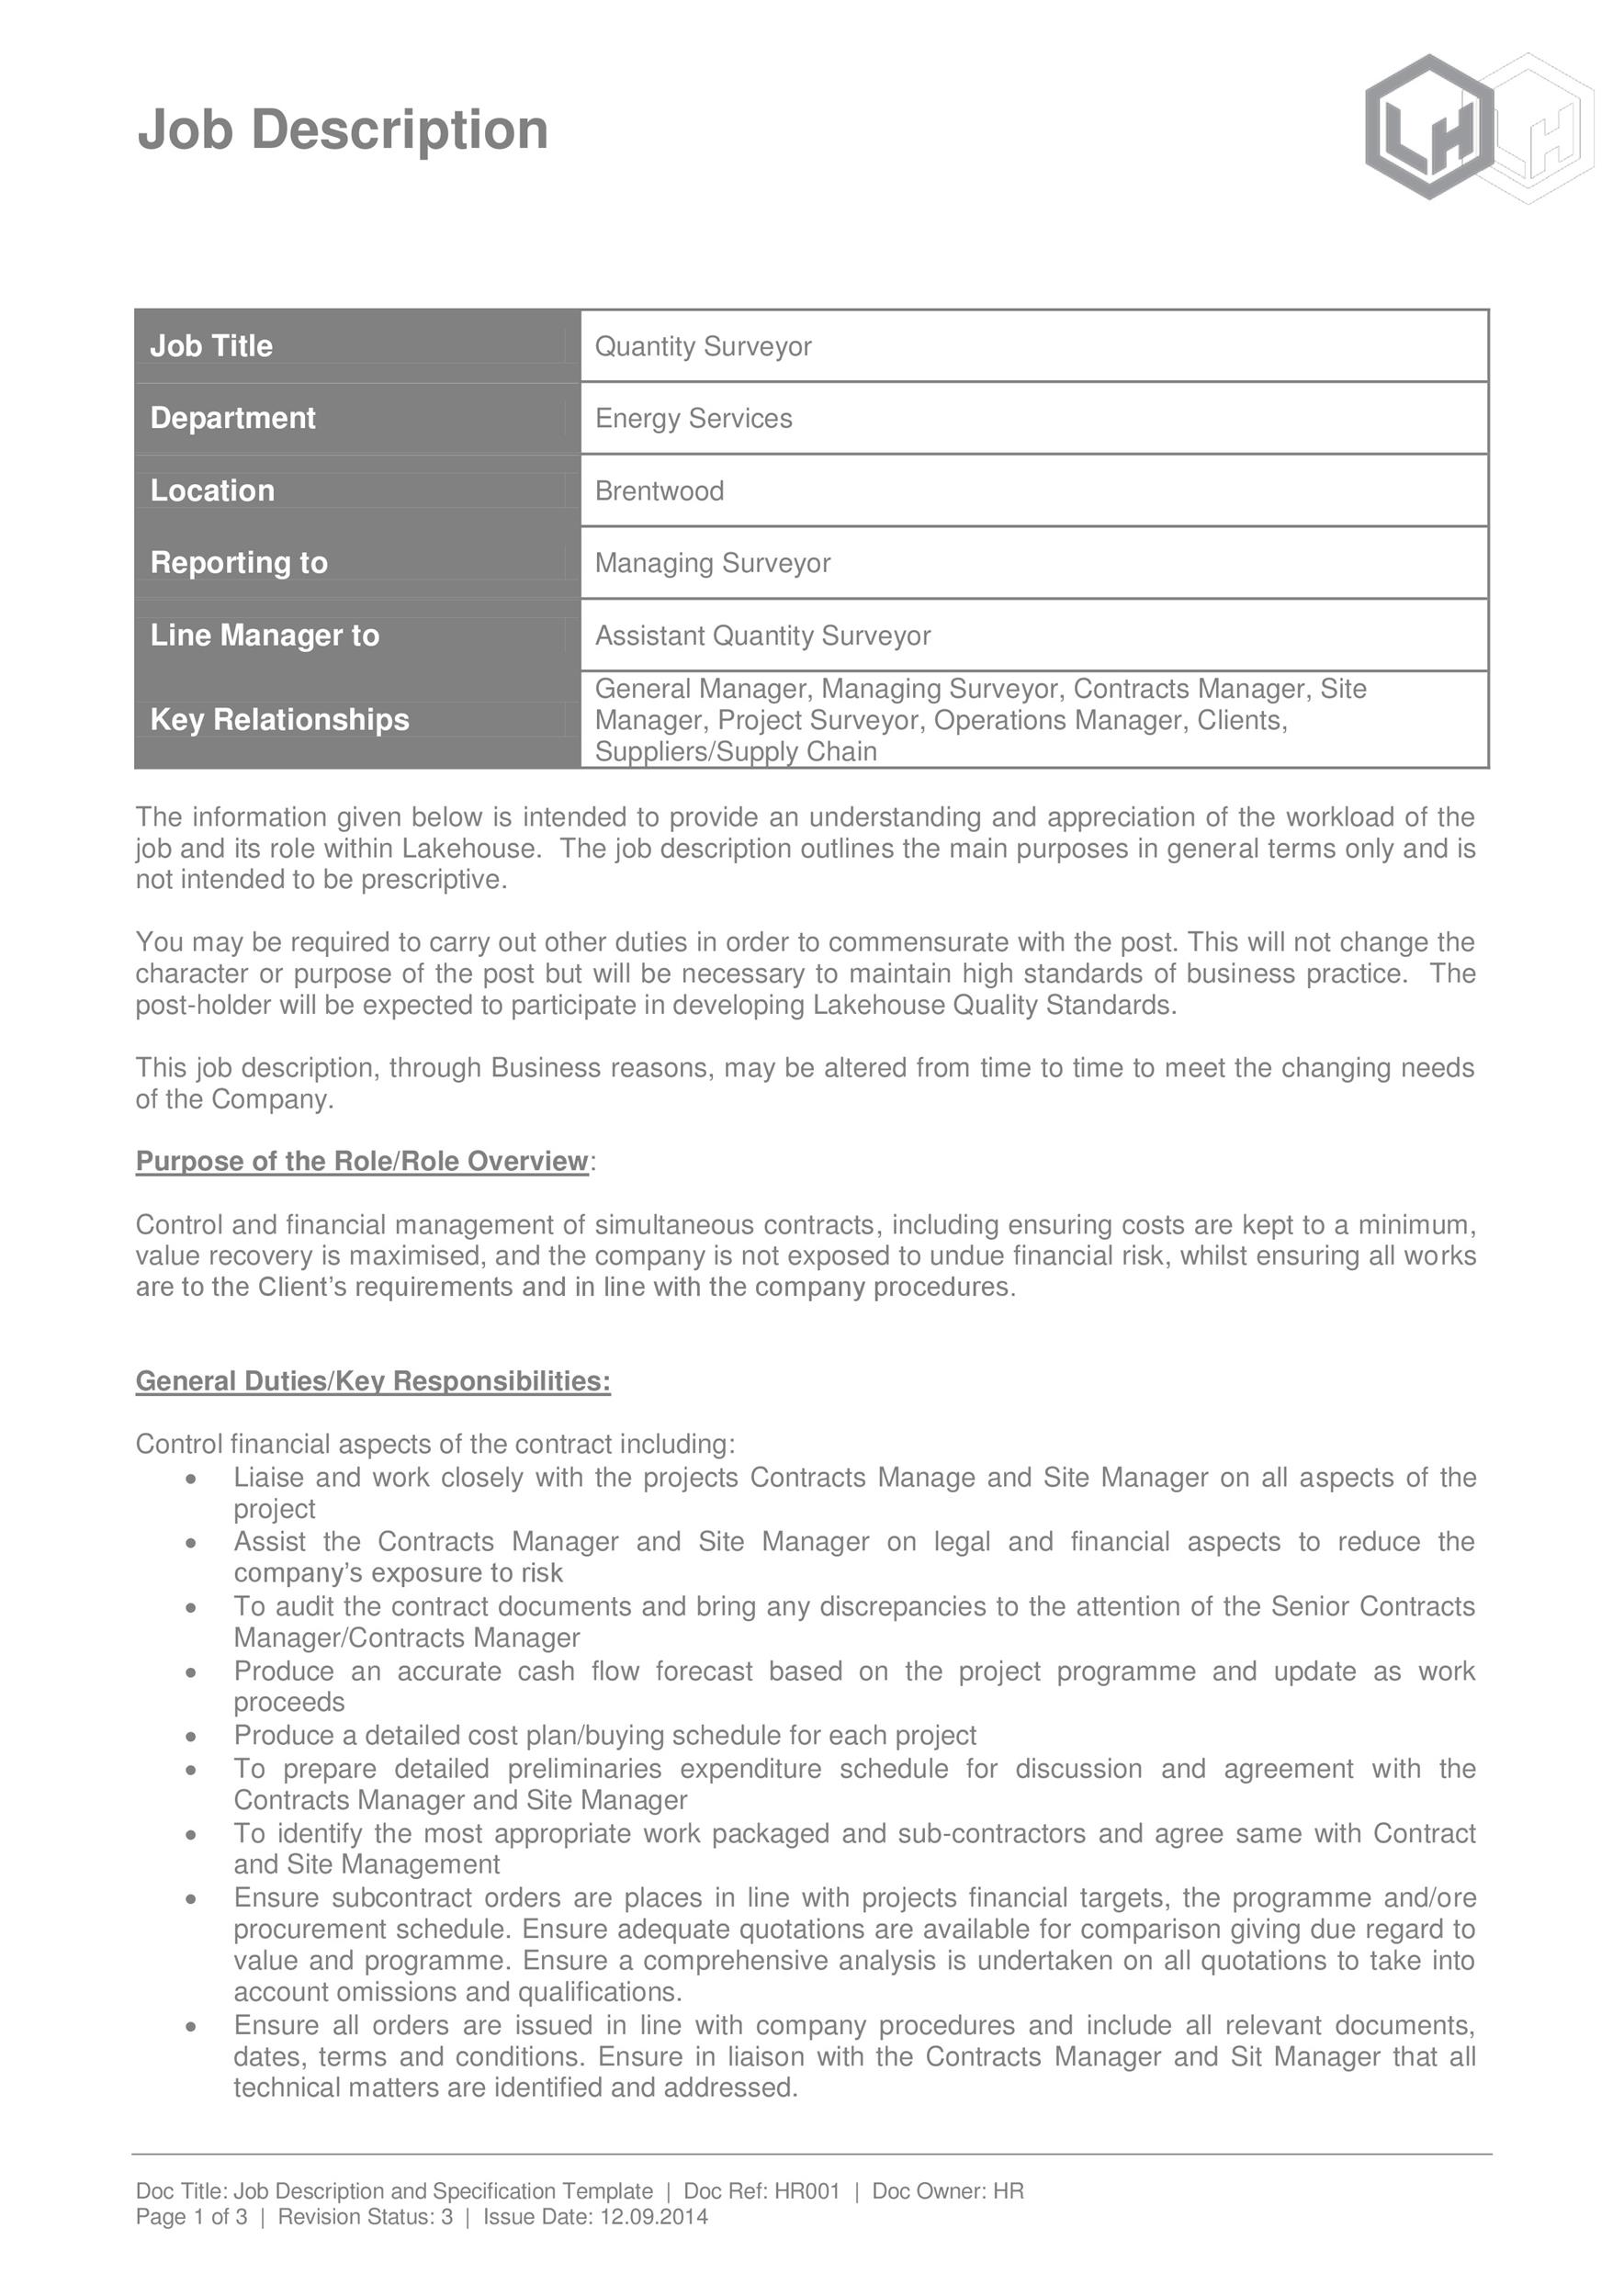 Finance Manager Job Description Job Analysis Of A Branch Manager Marketing Supervisor Free Job